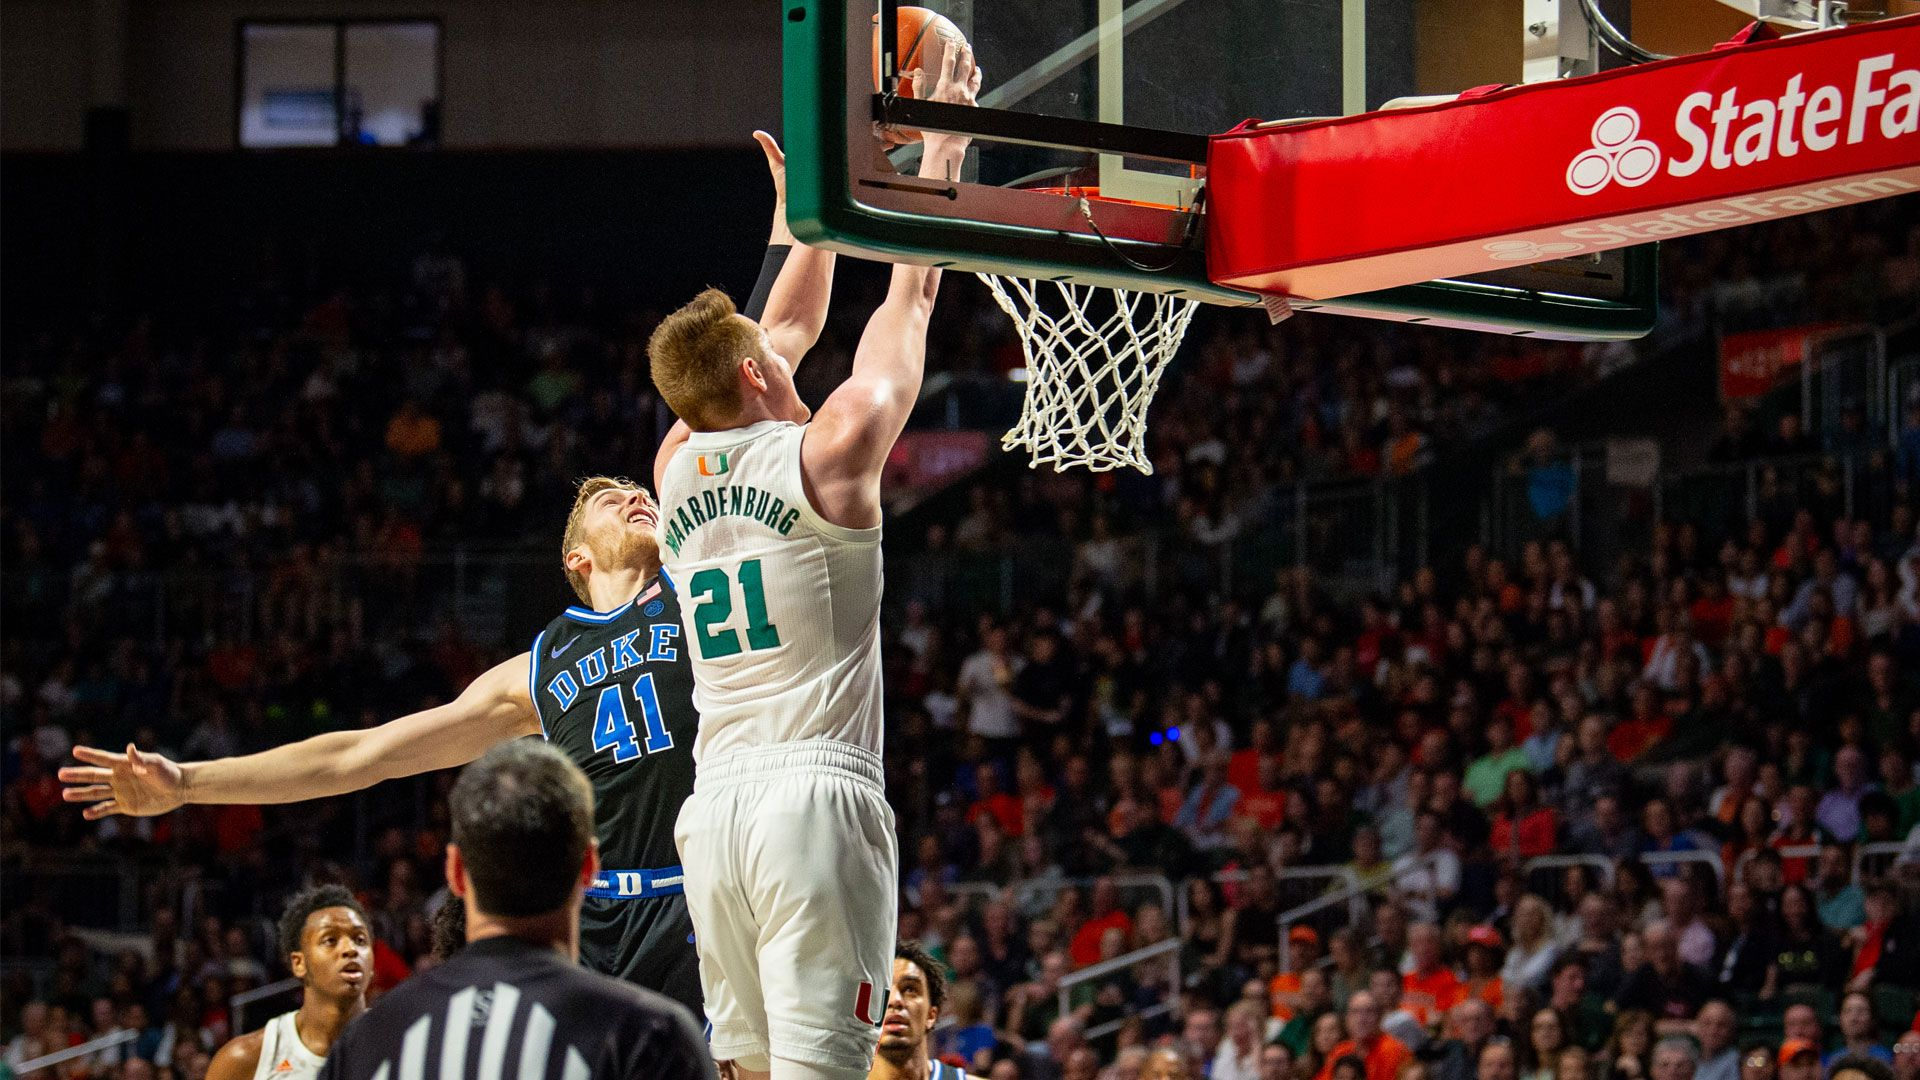 MBB Falls to Second-Ranked Duke